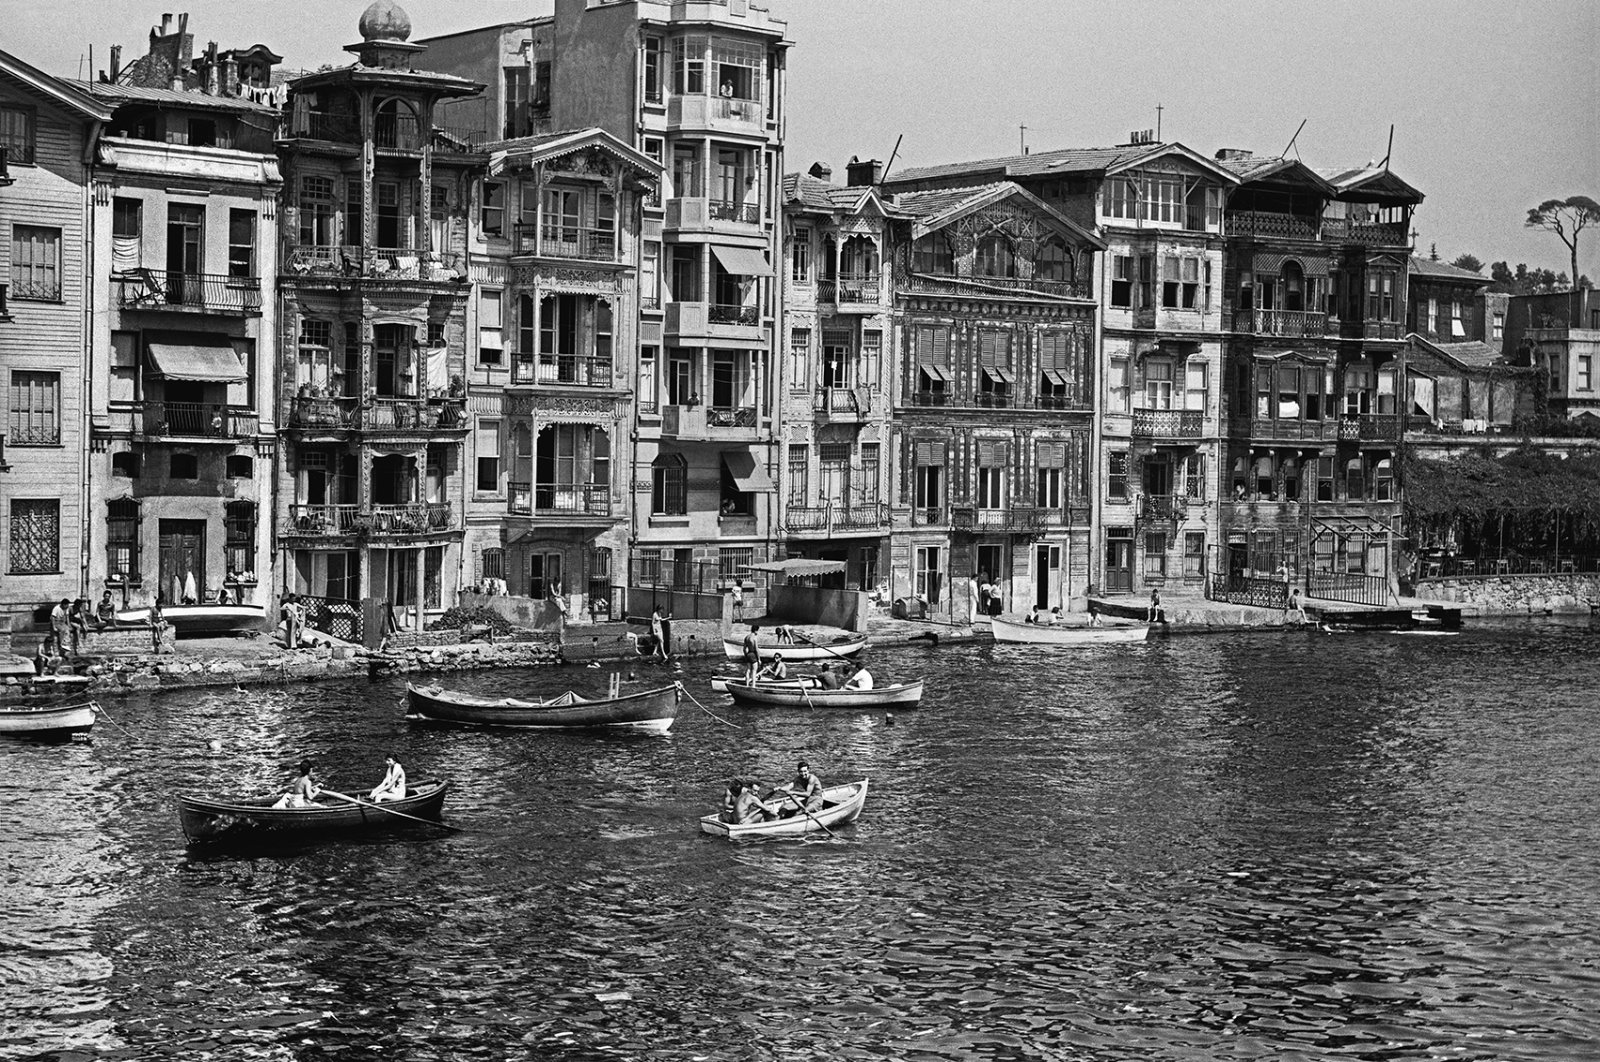 A photo of Istanbul by Ara Güler featured in the exhibition.